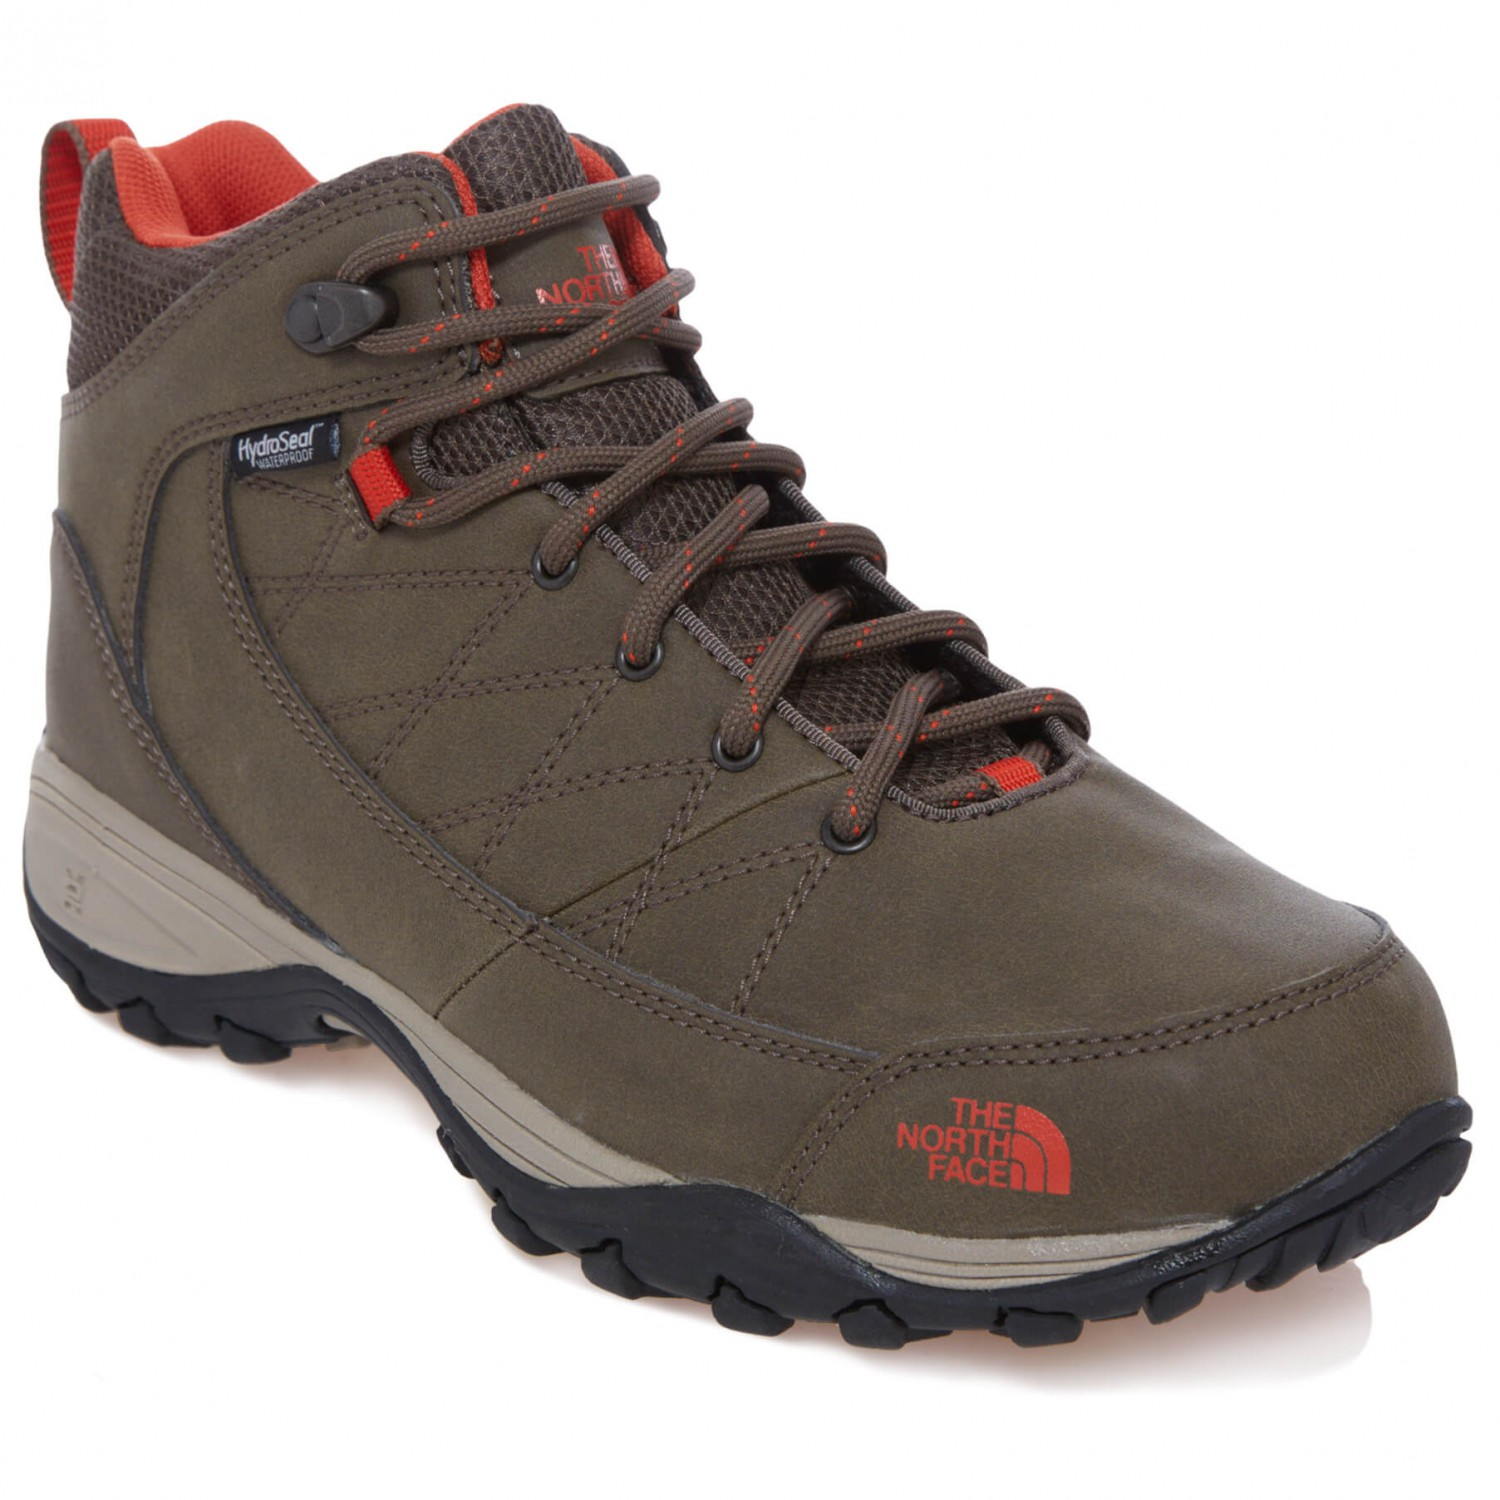 The North Face Storm Strike WP Waterproof Noir - Chaussures Chaussures-de-randonnee Femme